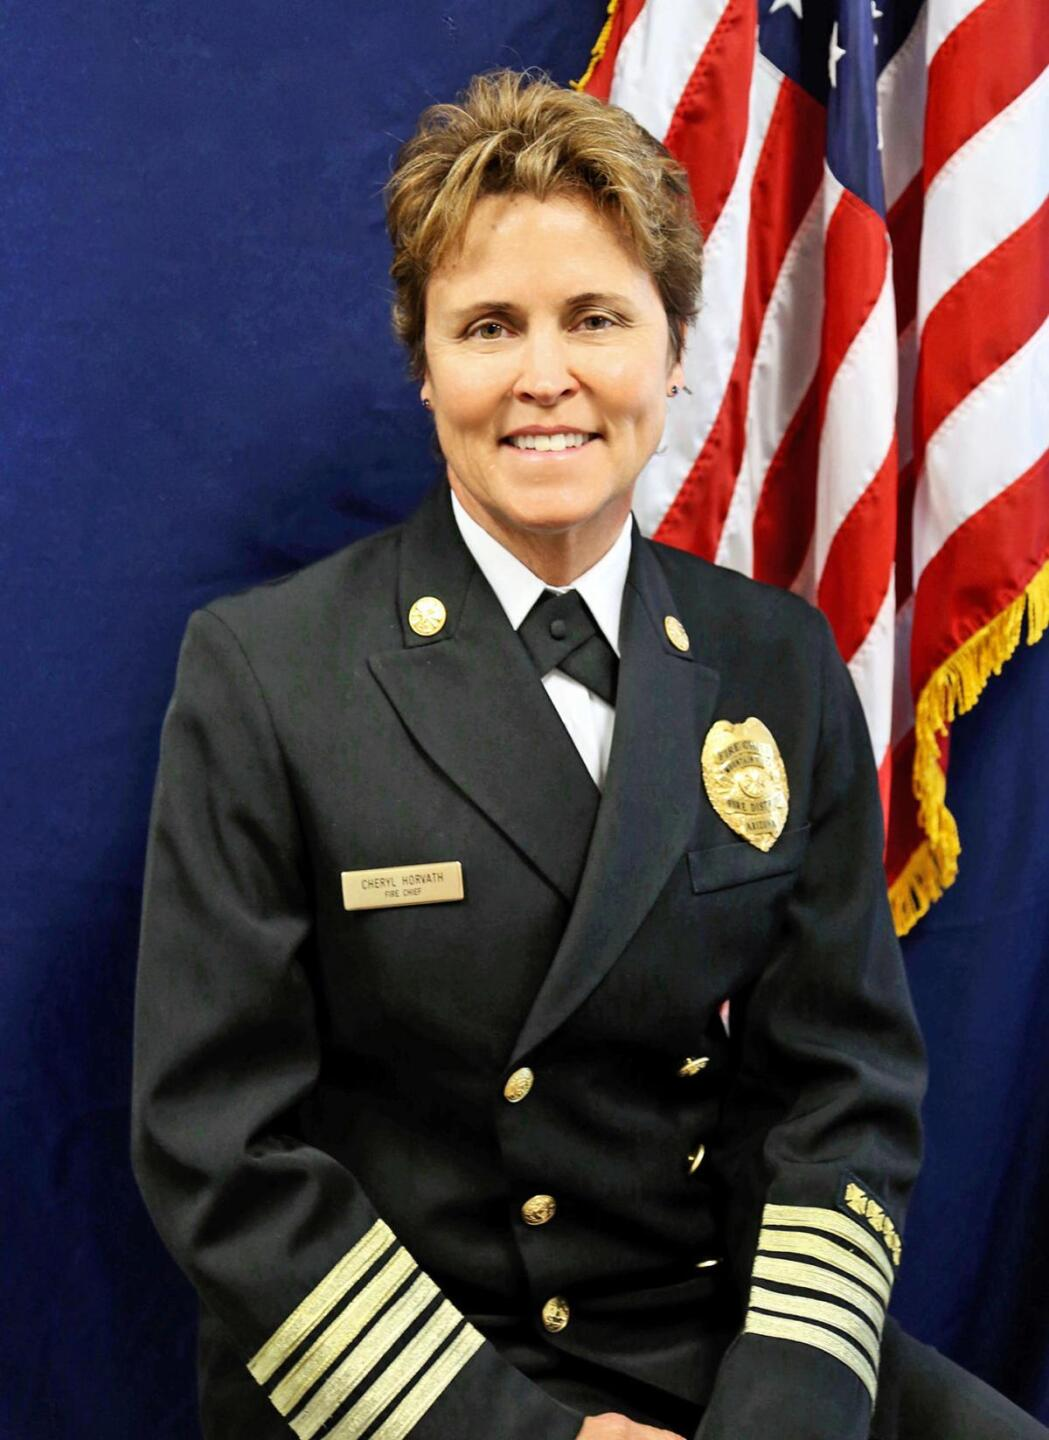 Chief Cheryl Horvath